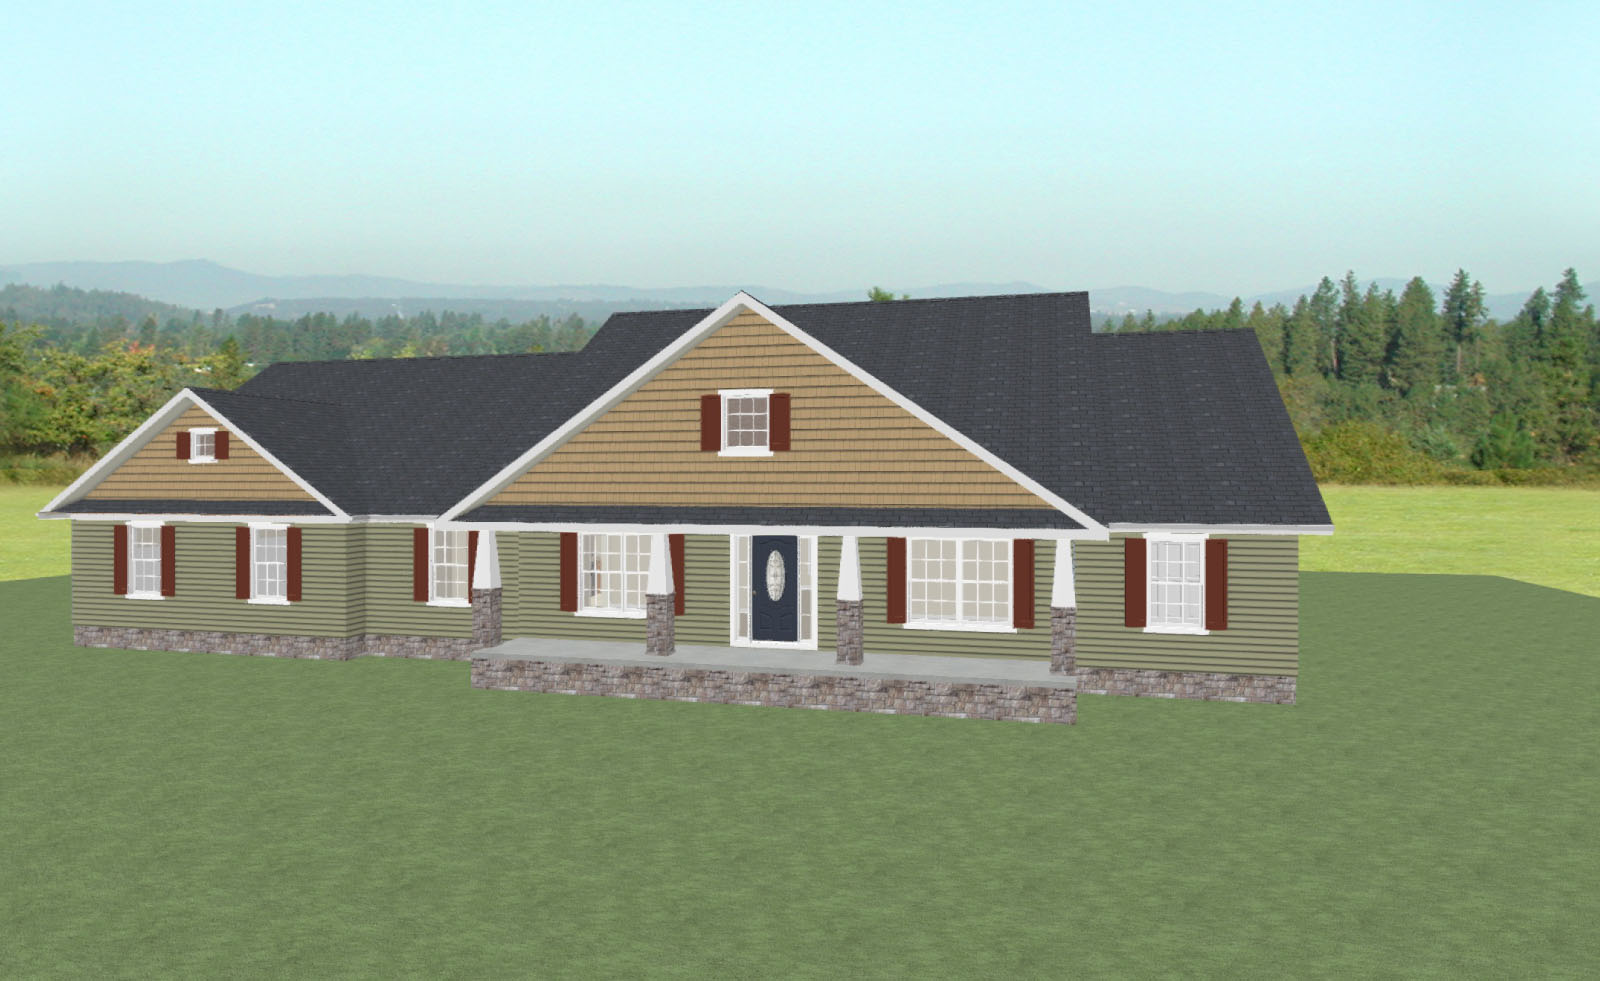 House rendering for the Milford affordable home design from H&H Builders, Inc.